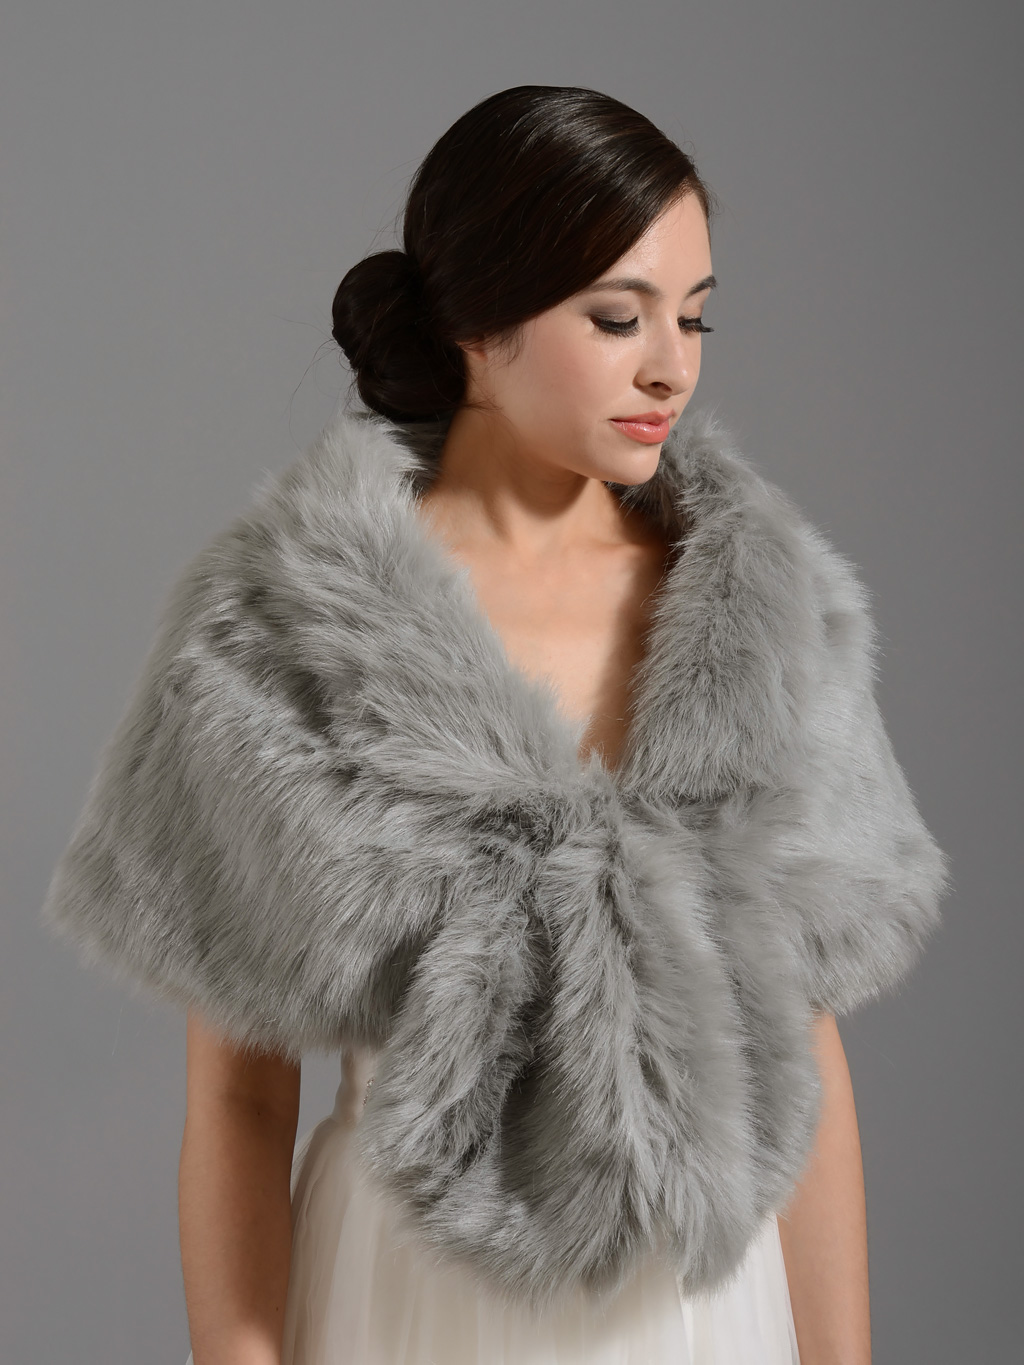 Silver Wedding Bridal Faux Fur Wrap Shrug Stole Shawl A001